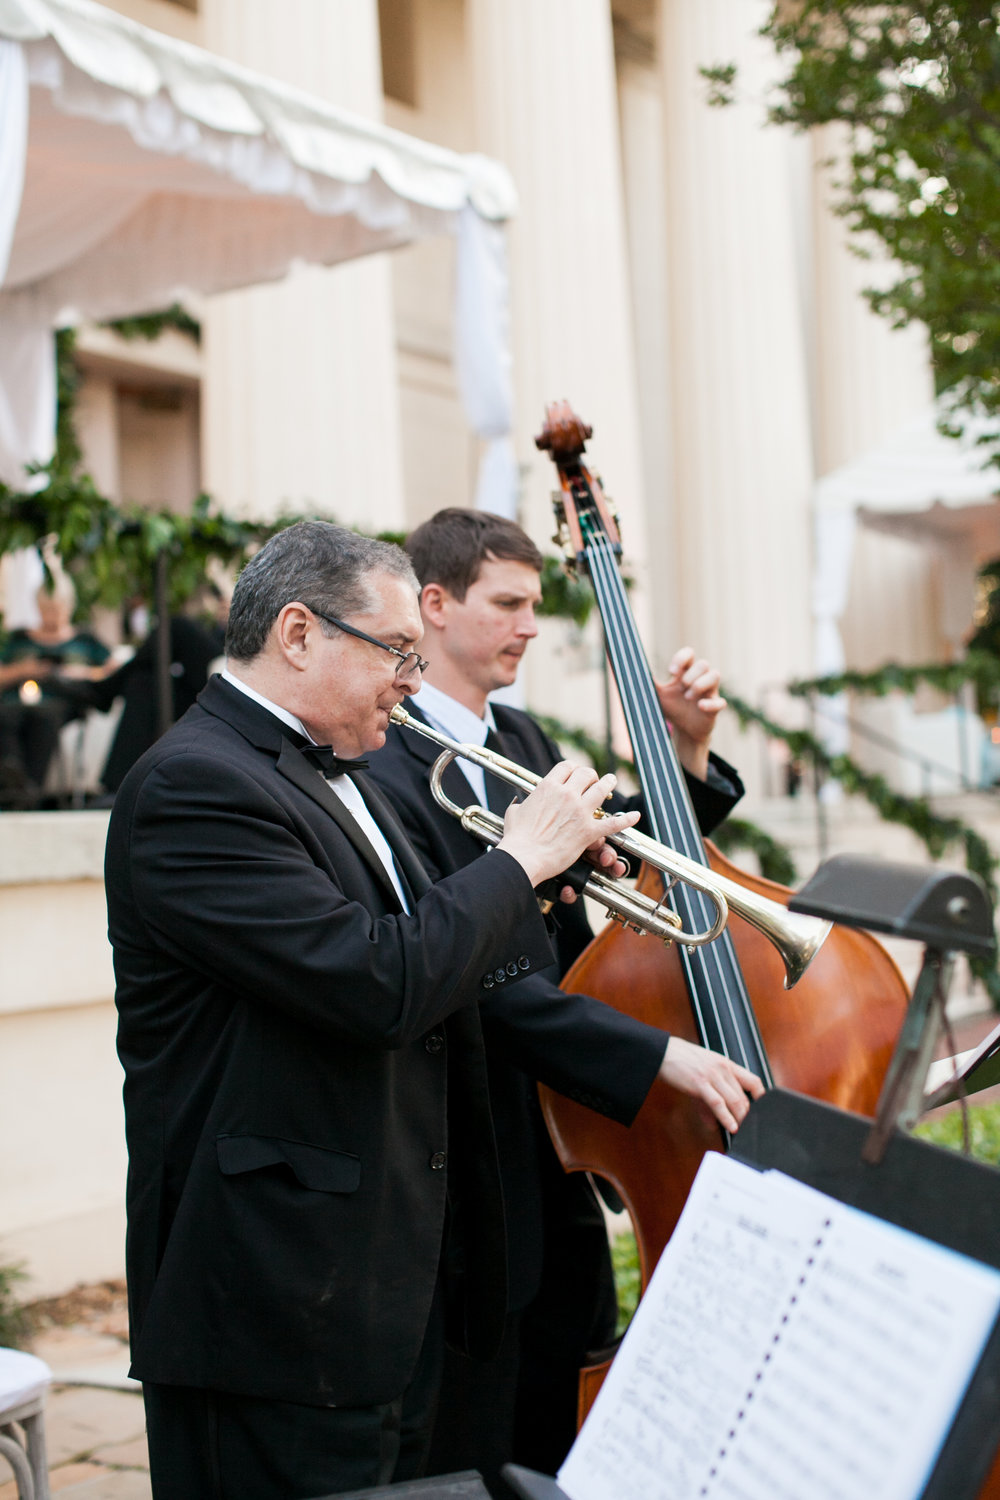 musicians-wedding-reception-greg-boulus-events-augusta-georgia